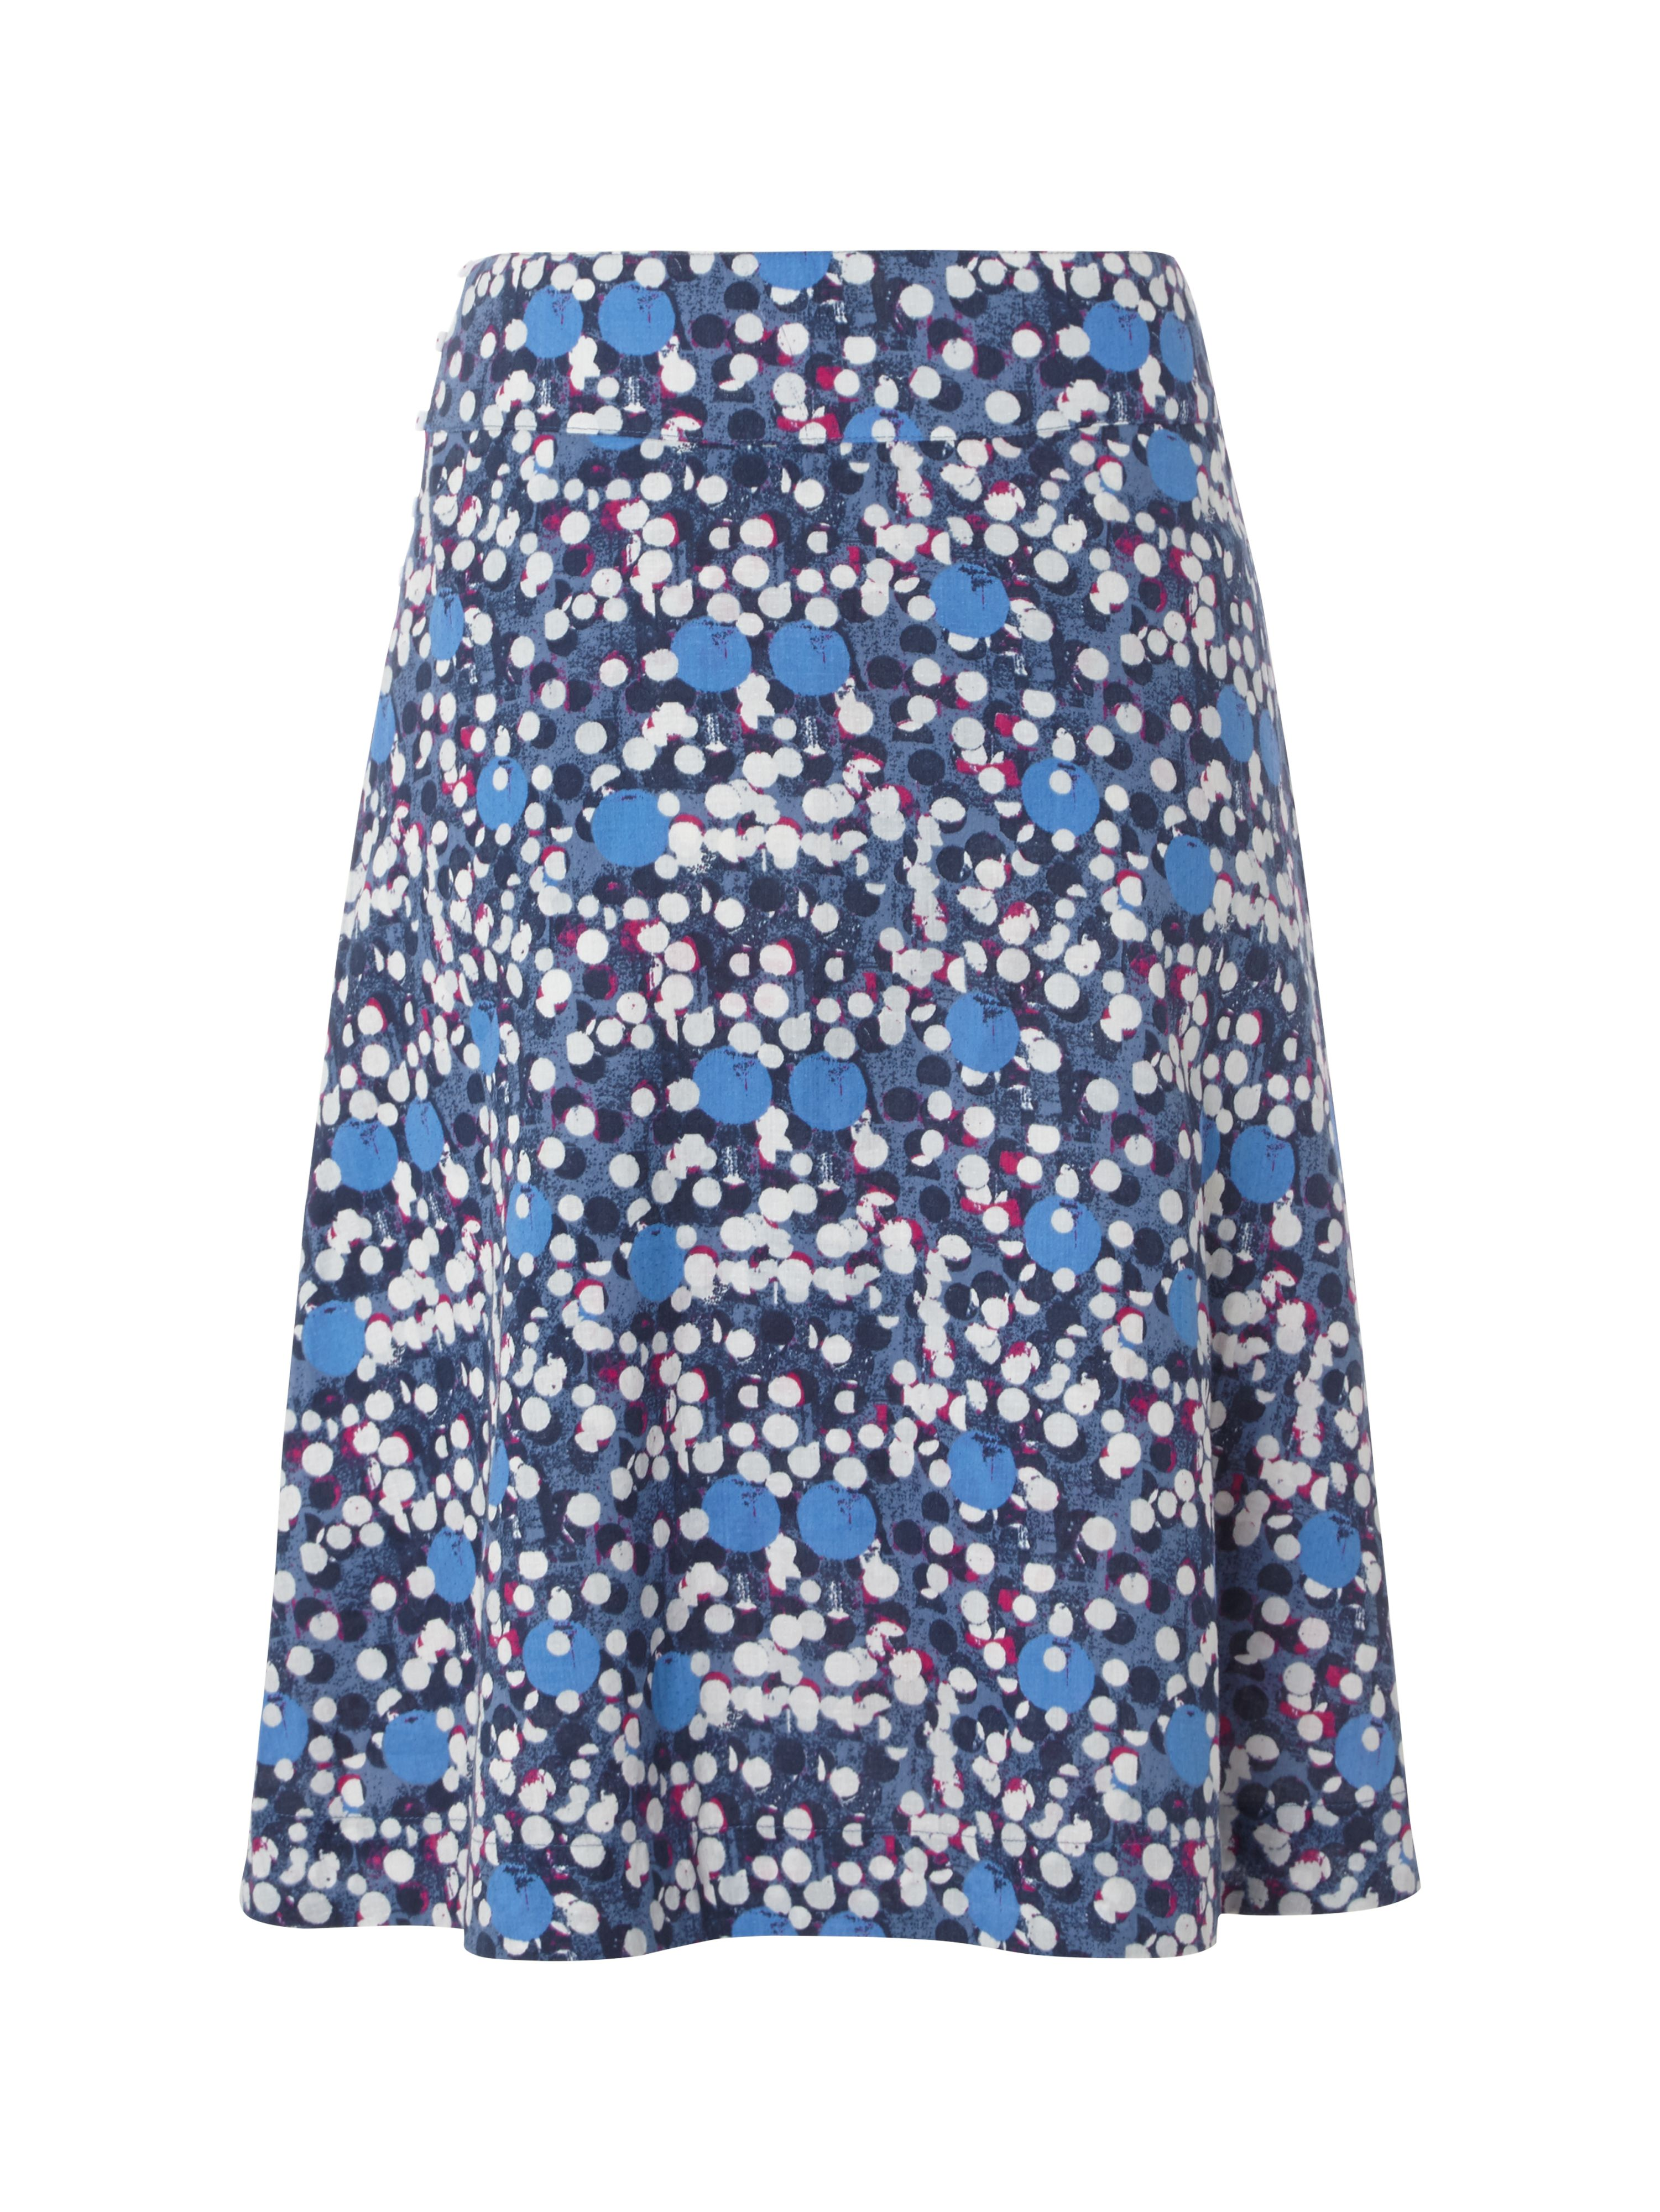 Dotty Dog  Reversible Skirt